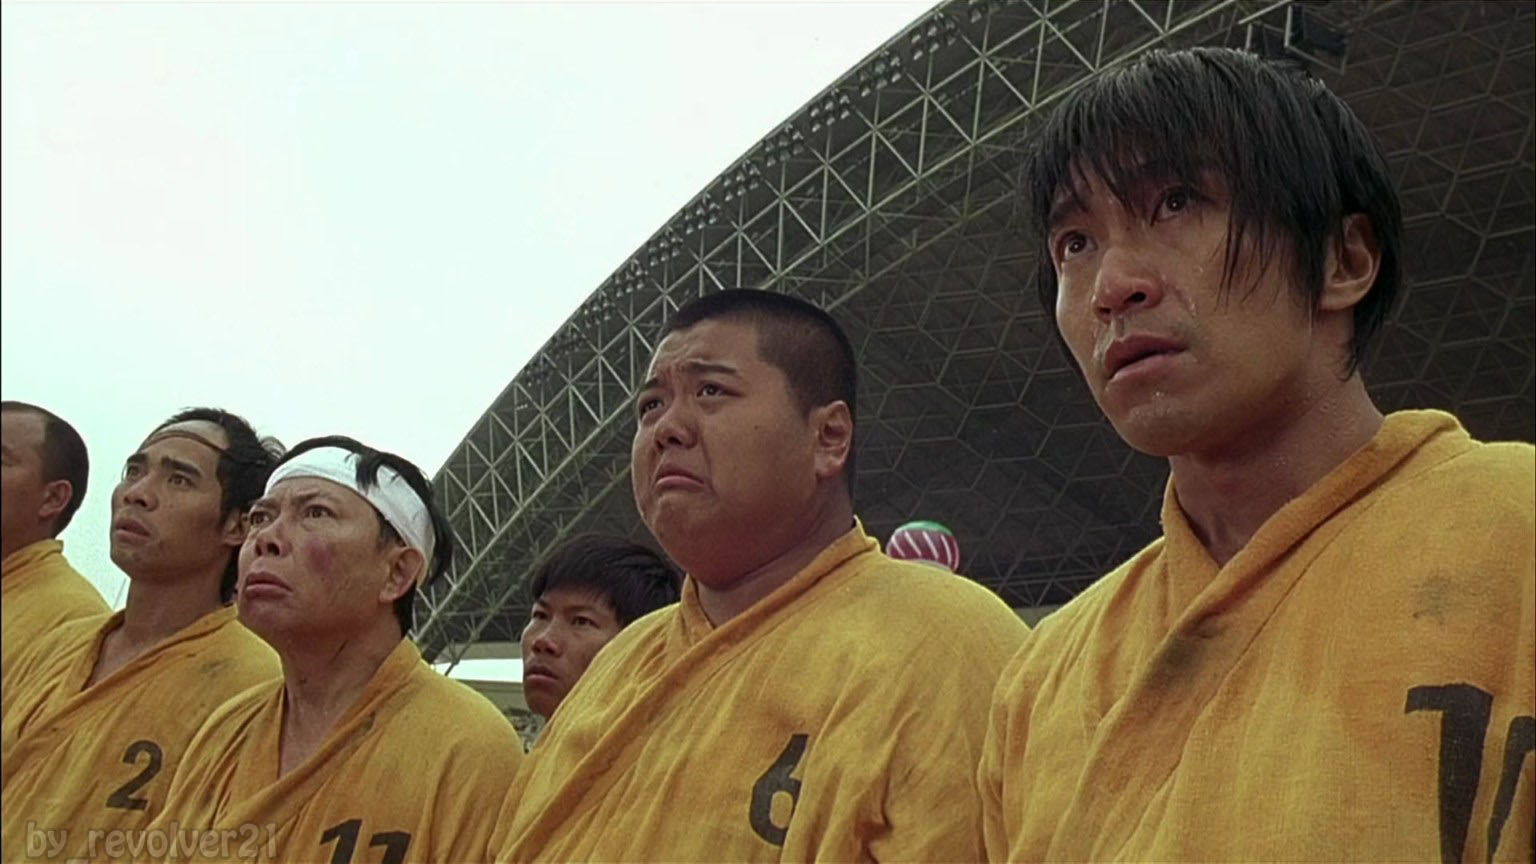 shaolin soccer Wallpaper and Background Image 1536x864 ID475659 Wallpaper Abyss